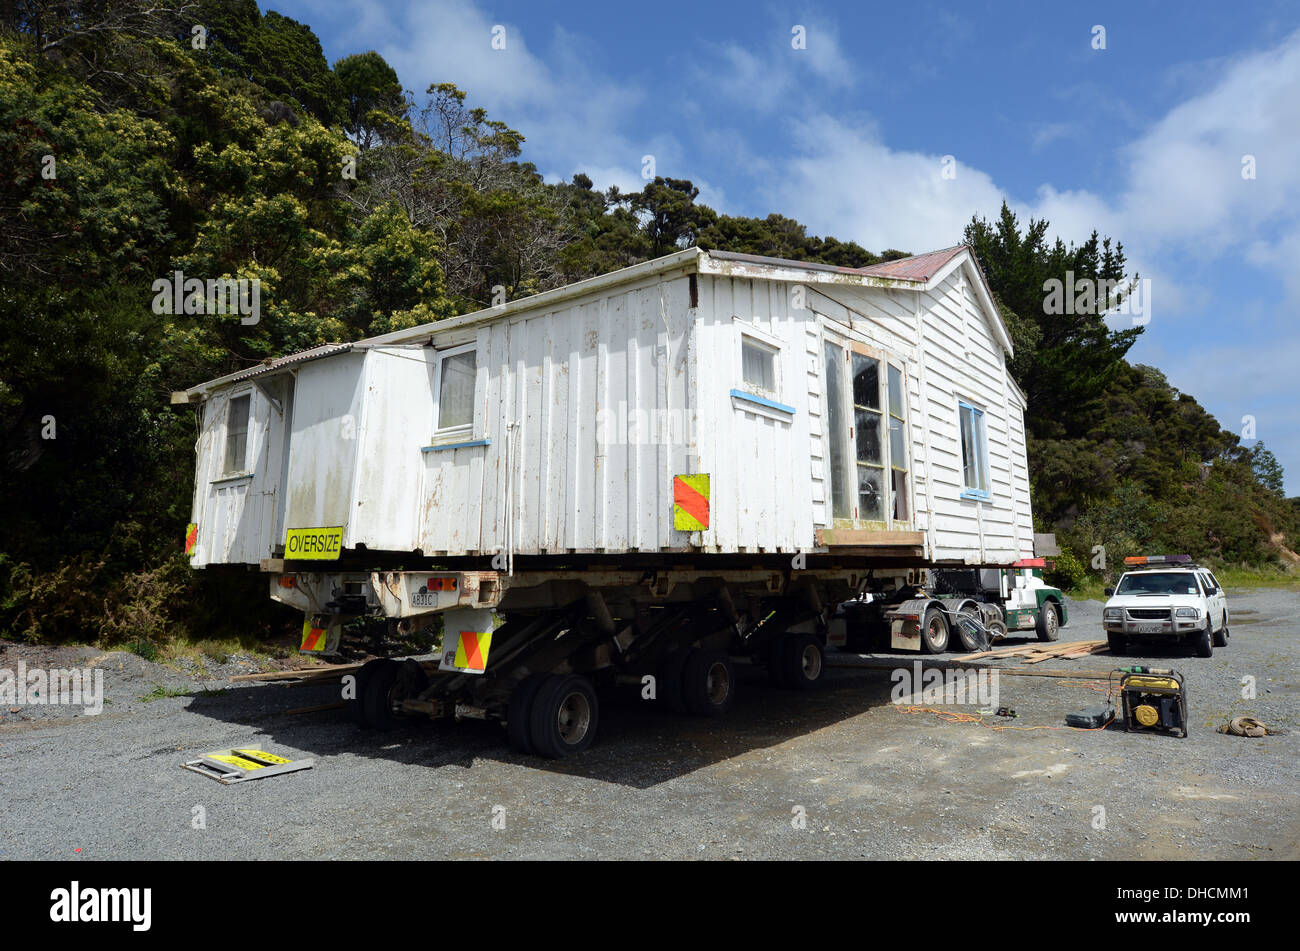 Transporting an old house to a new location in New Zealand Stock Photo